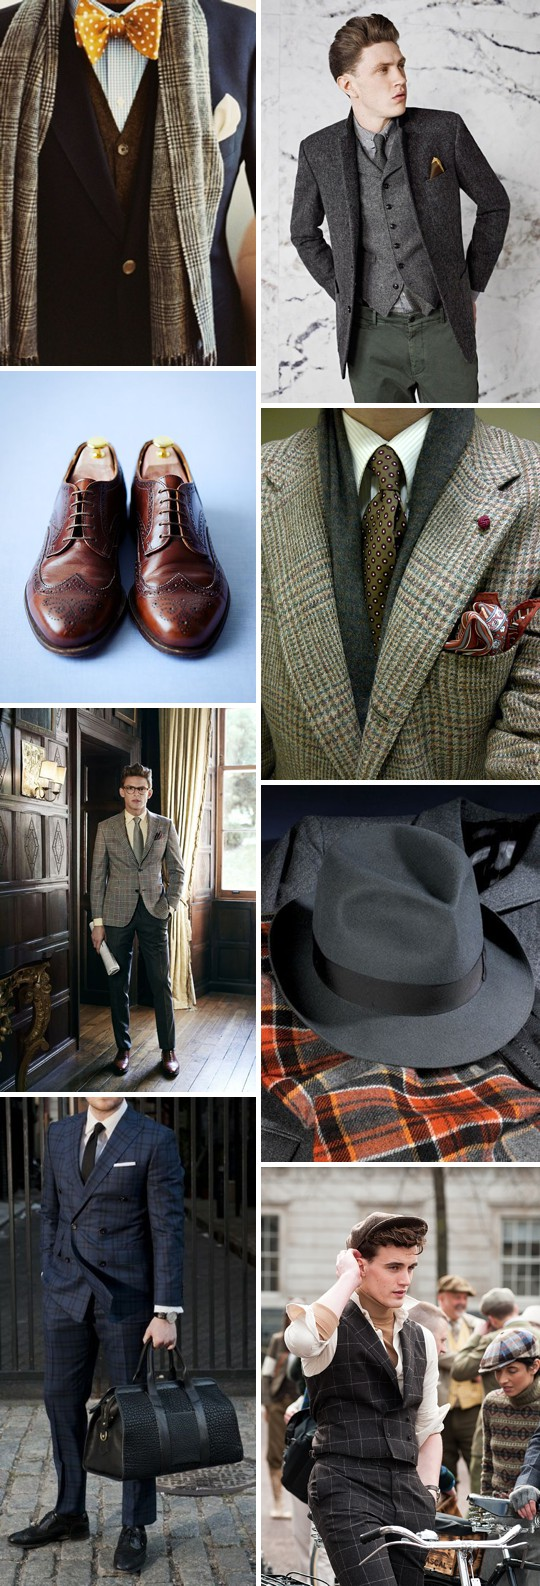 An Inspiration Post Filled With Ideas On What A Groom Can Wear On His Wedding Day_0004